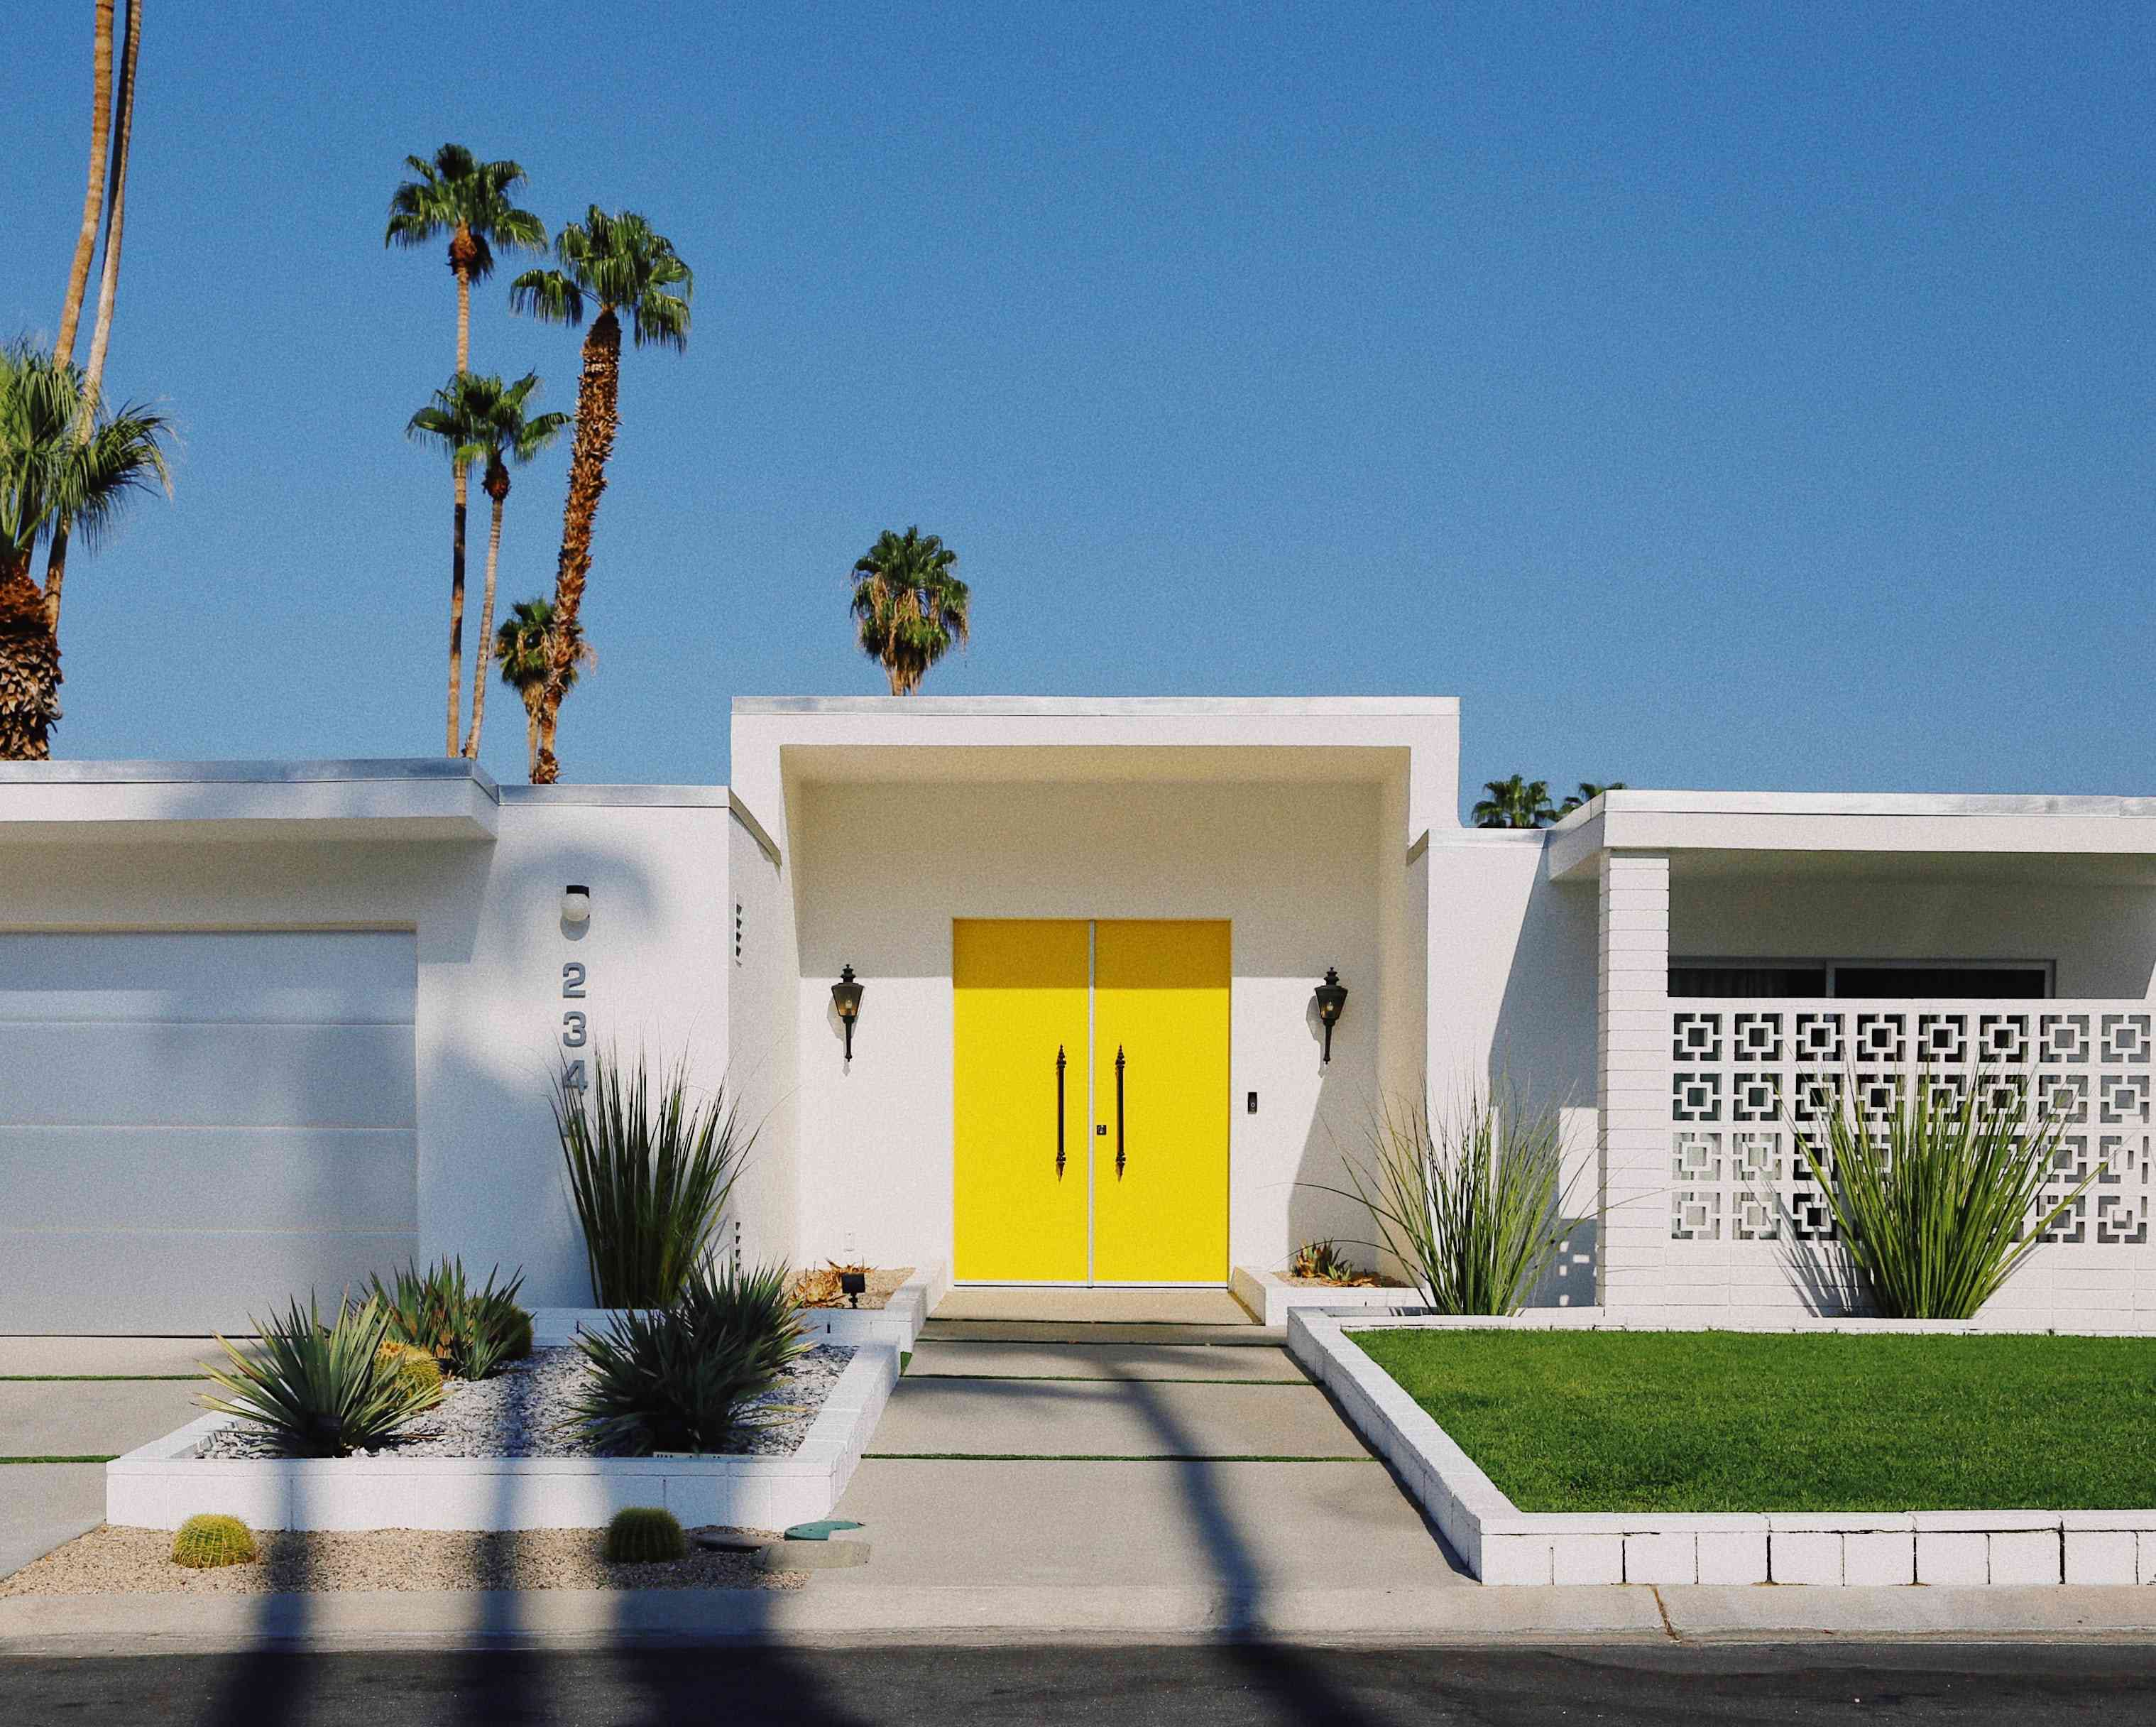 white house with yellow front door against a blue sky with palm trees